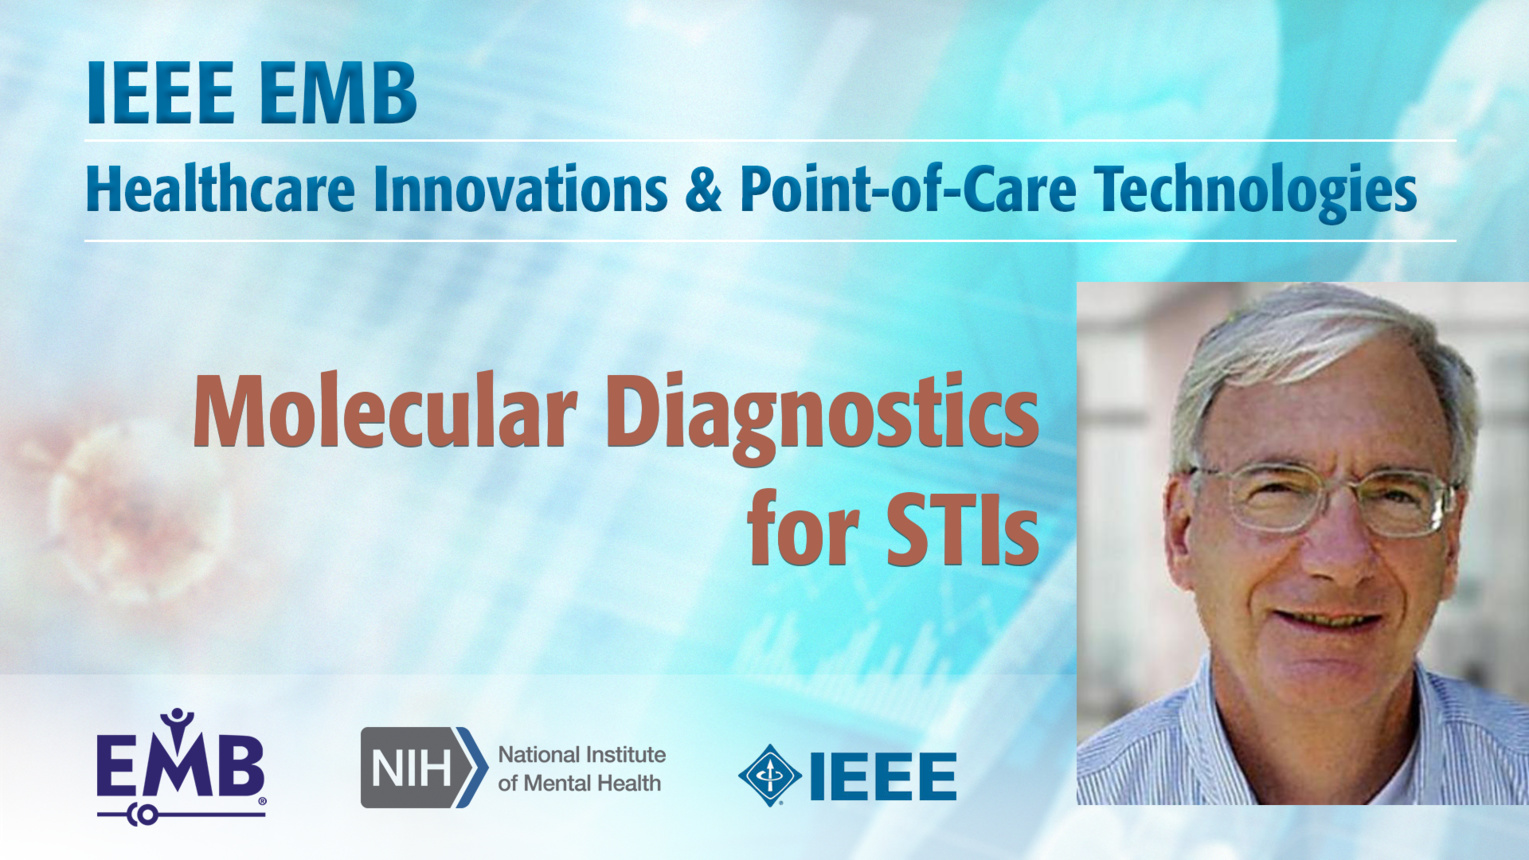 Molecular Diagnostics for STIs - Gary Schoolnik - IEEE EMBS at NIH, 2019